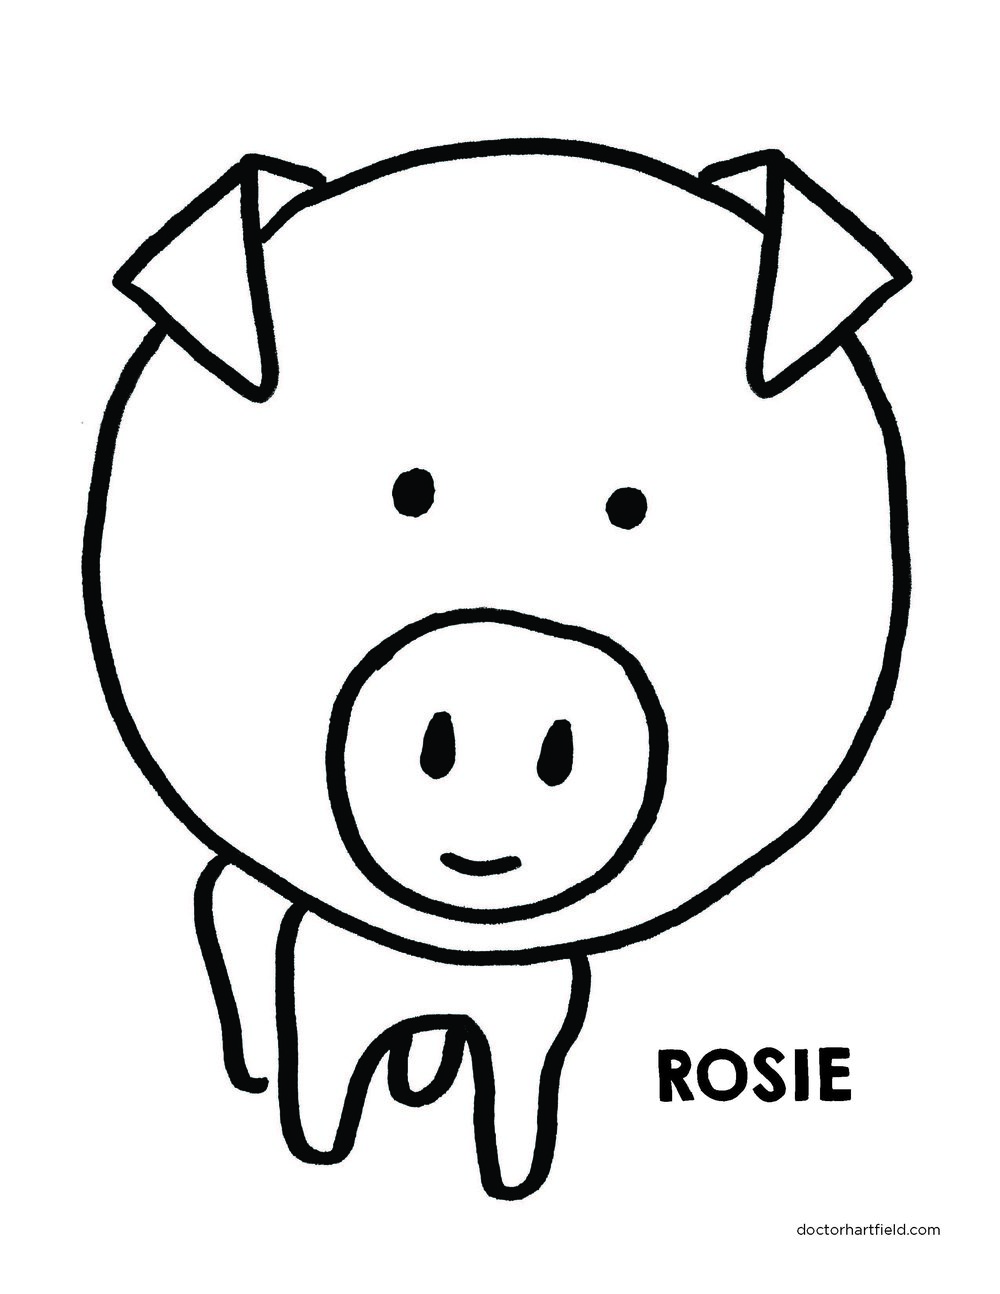 Rosie_Coloring Book Pages 2.jpg